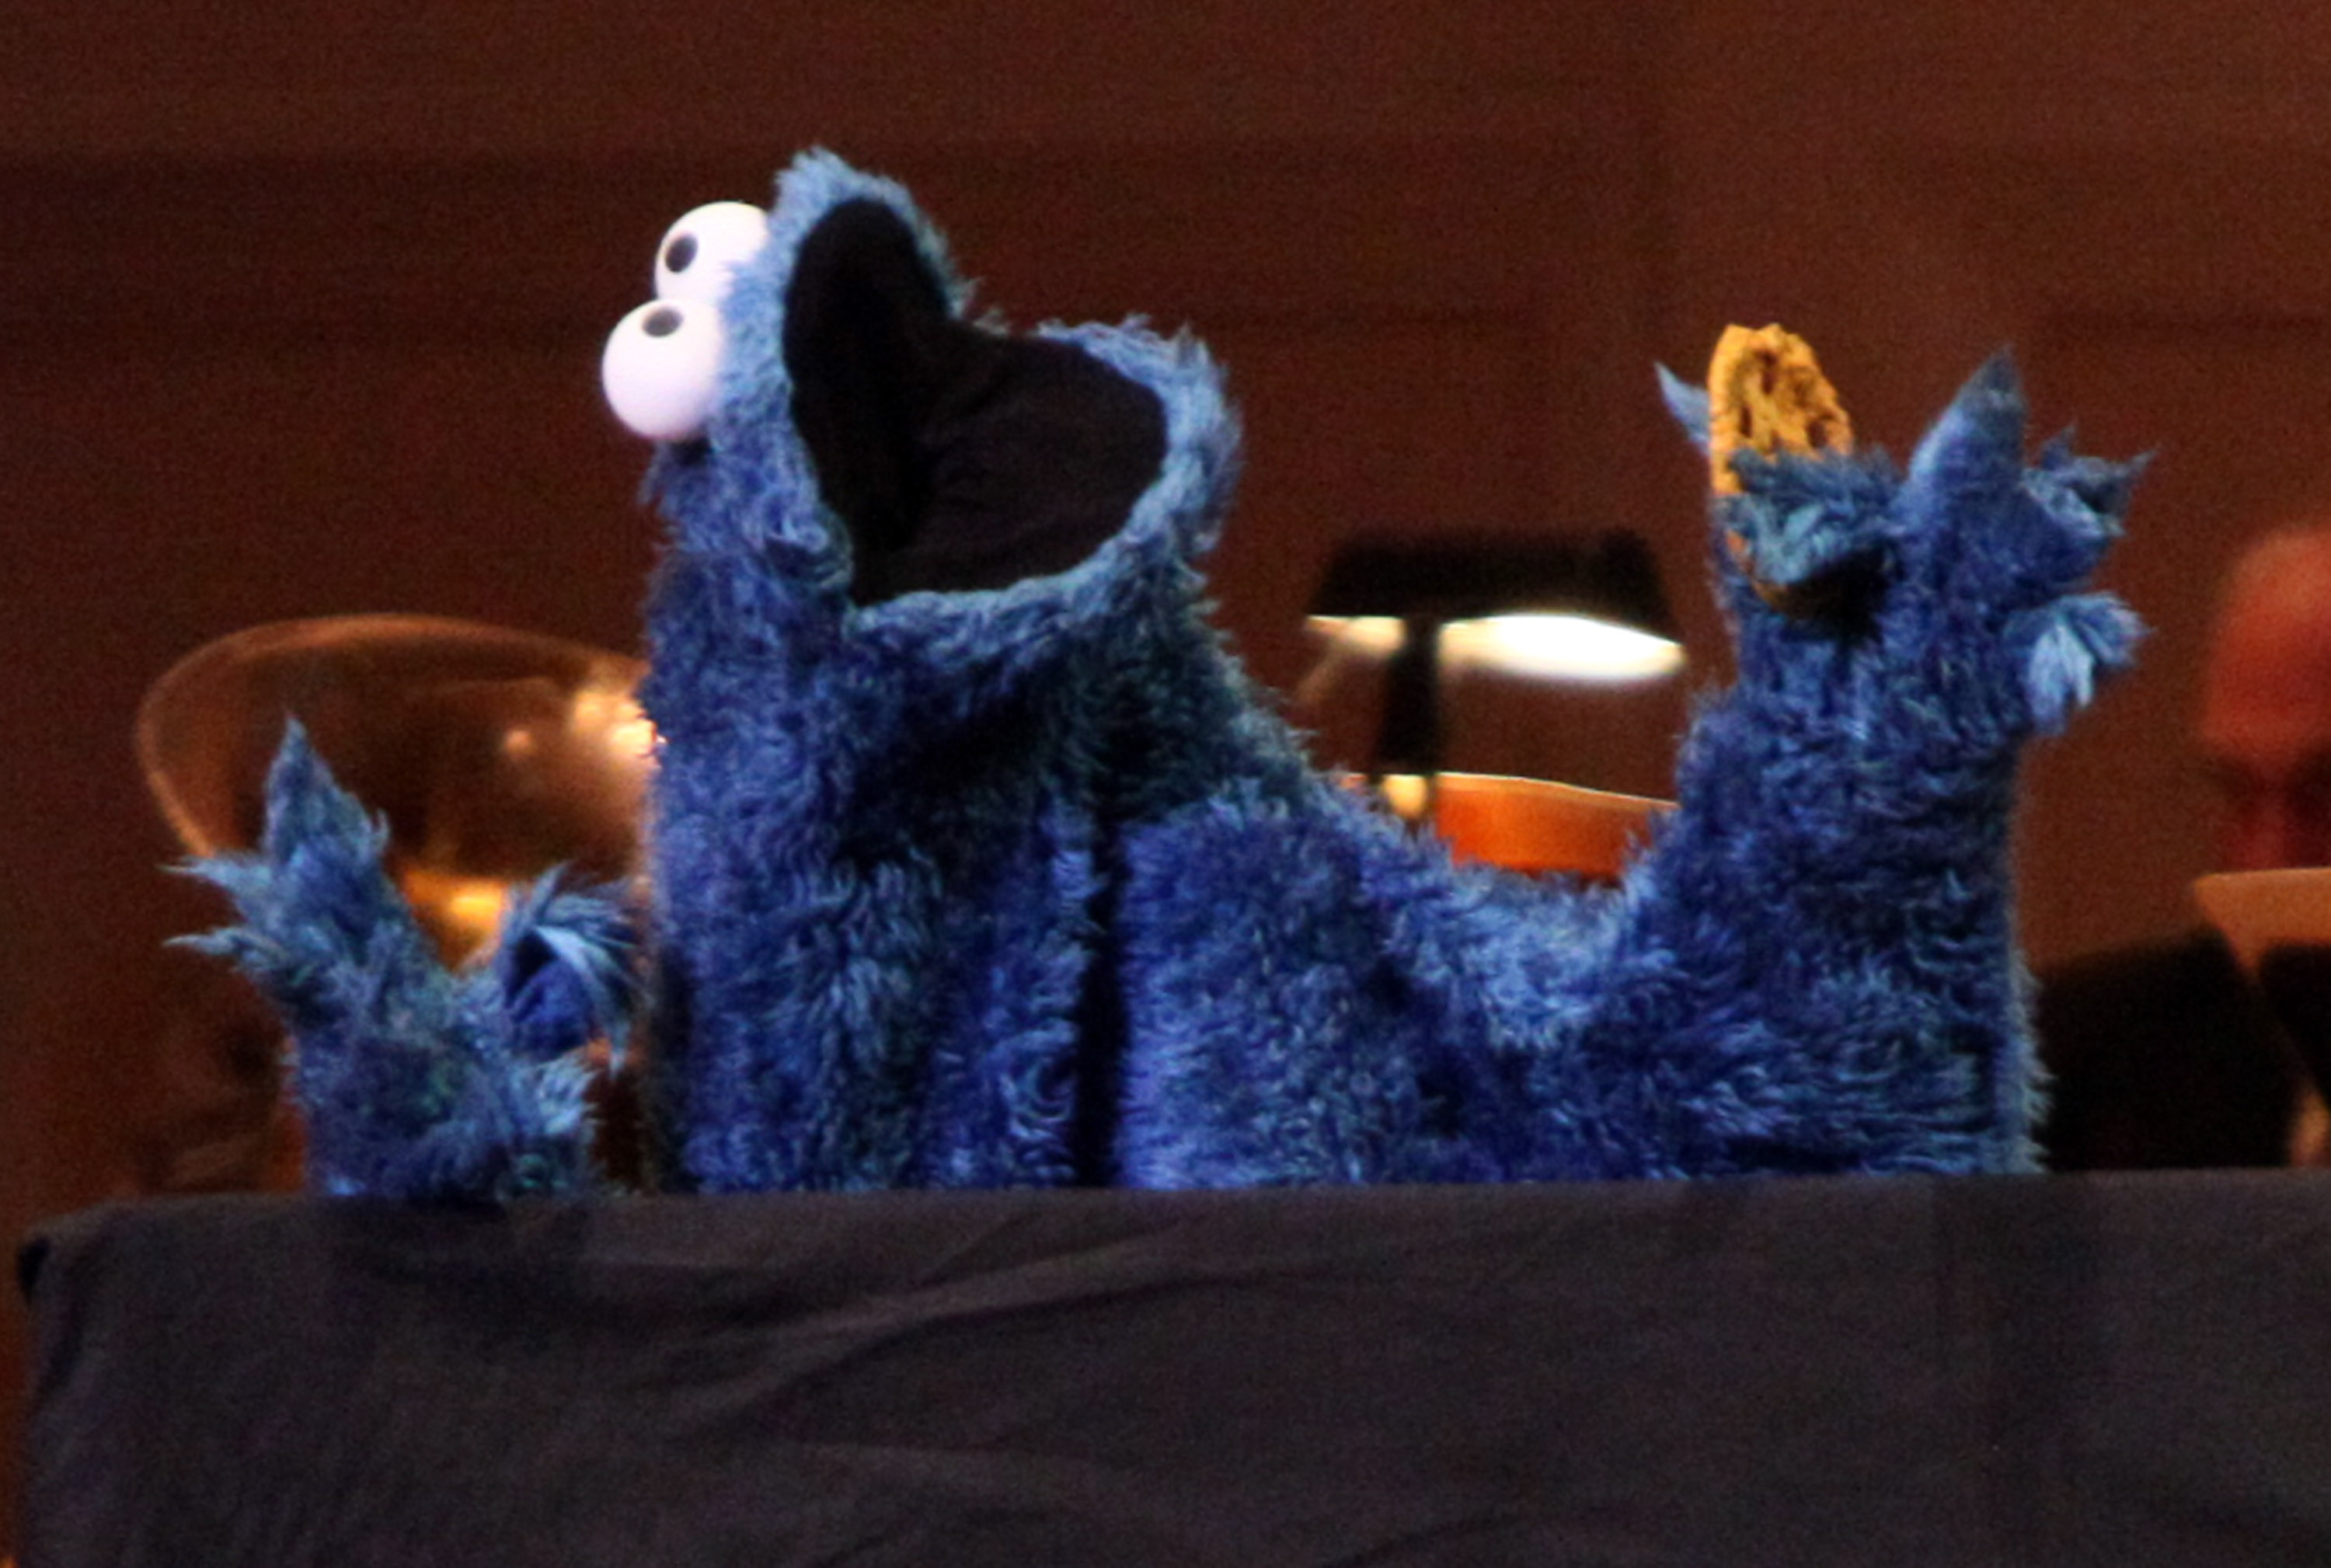 Cookie Monster performs during The New York Pops Present  Jim Henson's Musical World  at Carnegie Hall on April 14, 2012 in New York City.